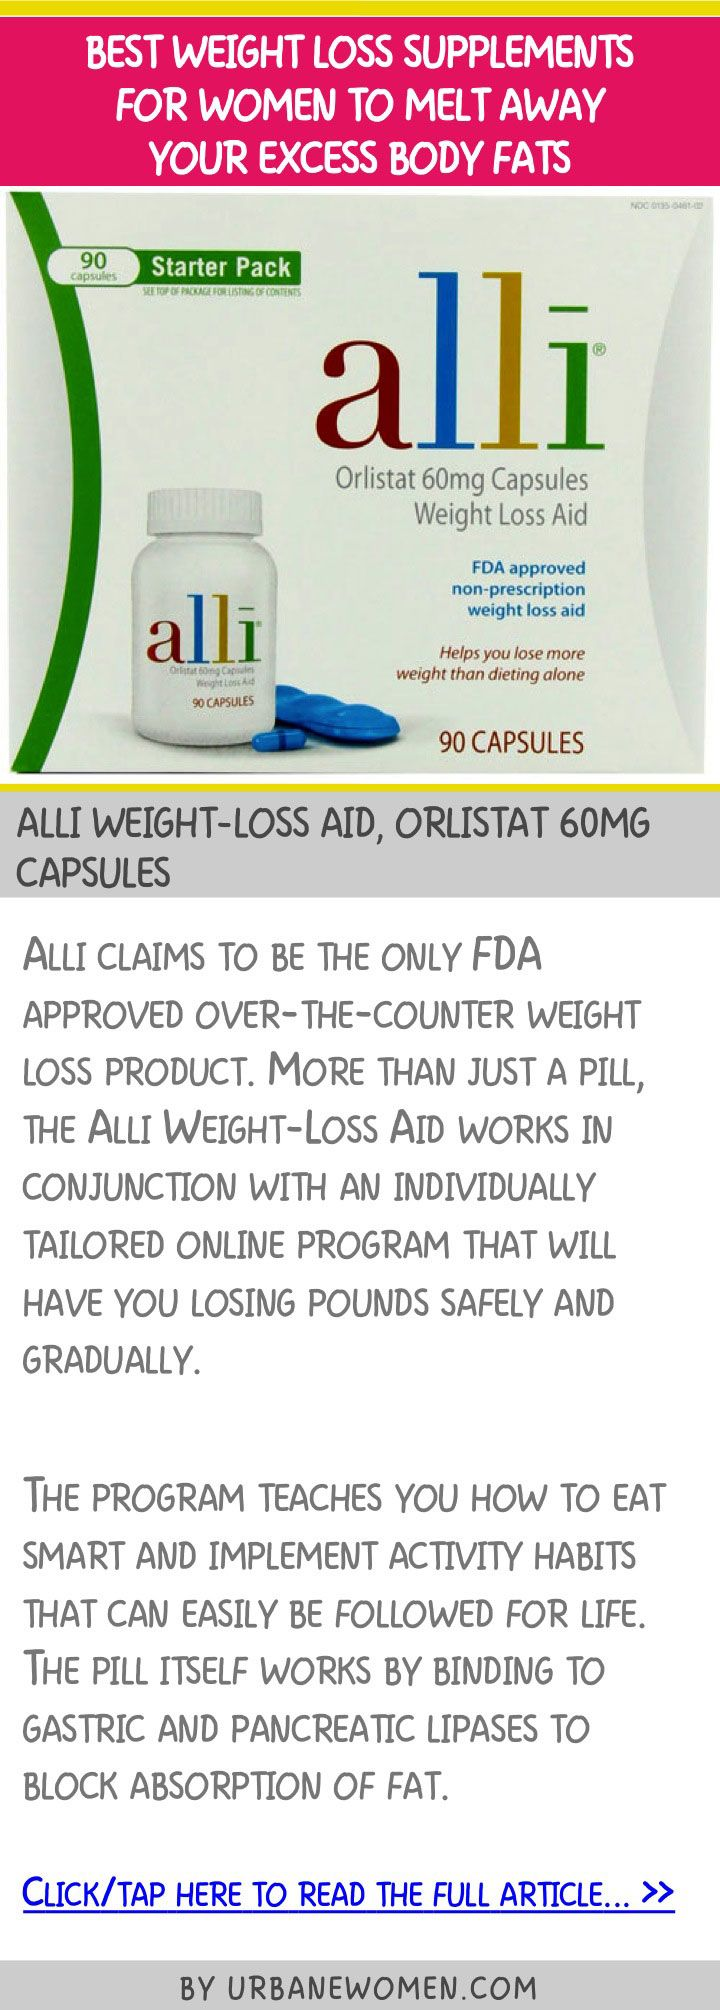 Weight loss vitamin d supplements image 10